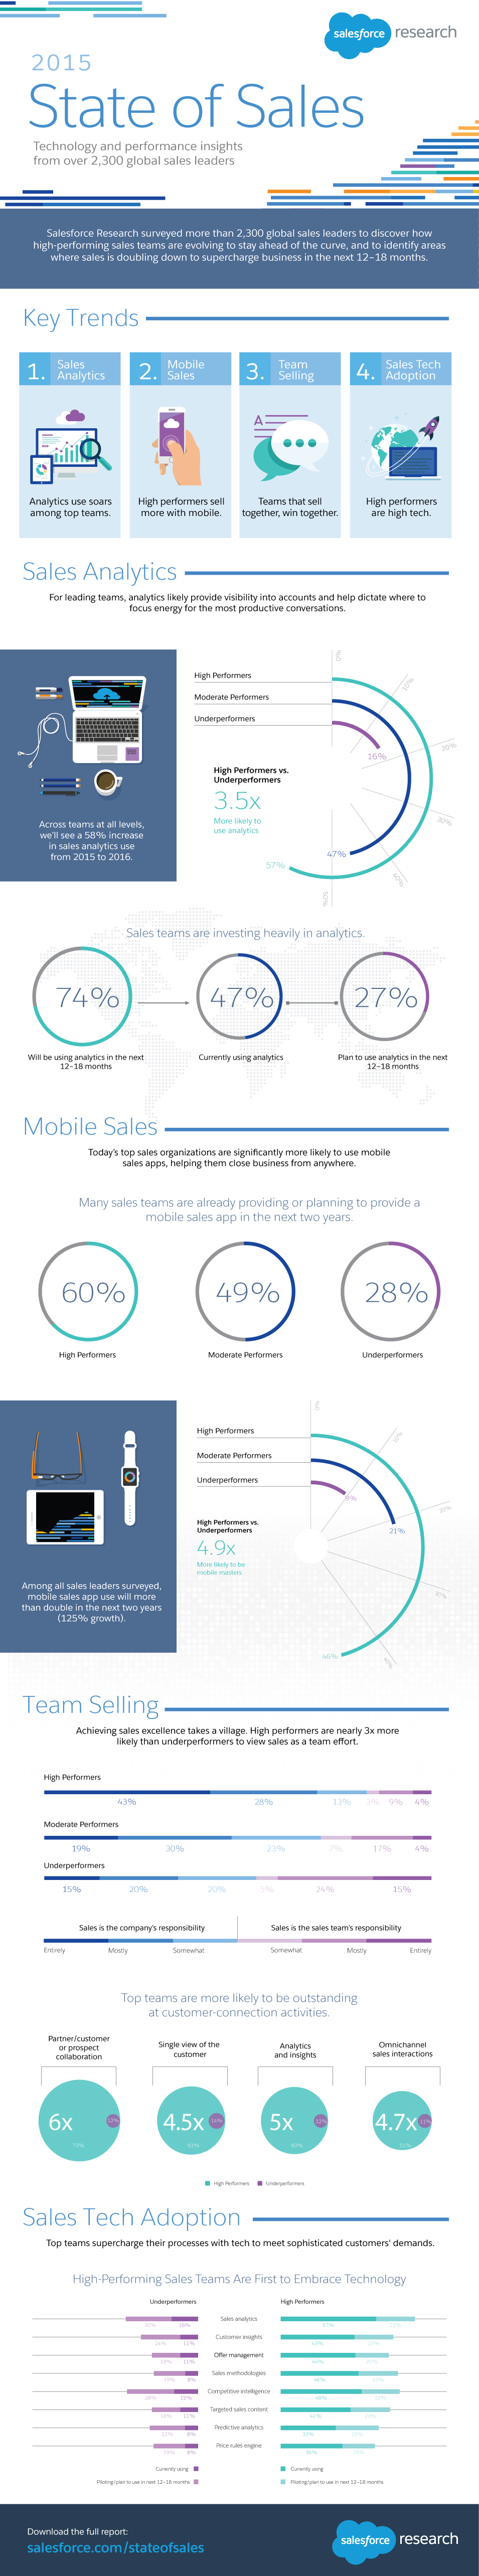 2015 State of Sales #infographic